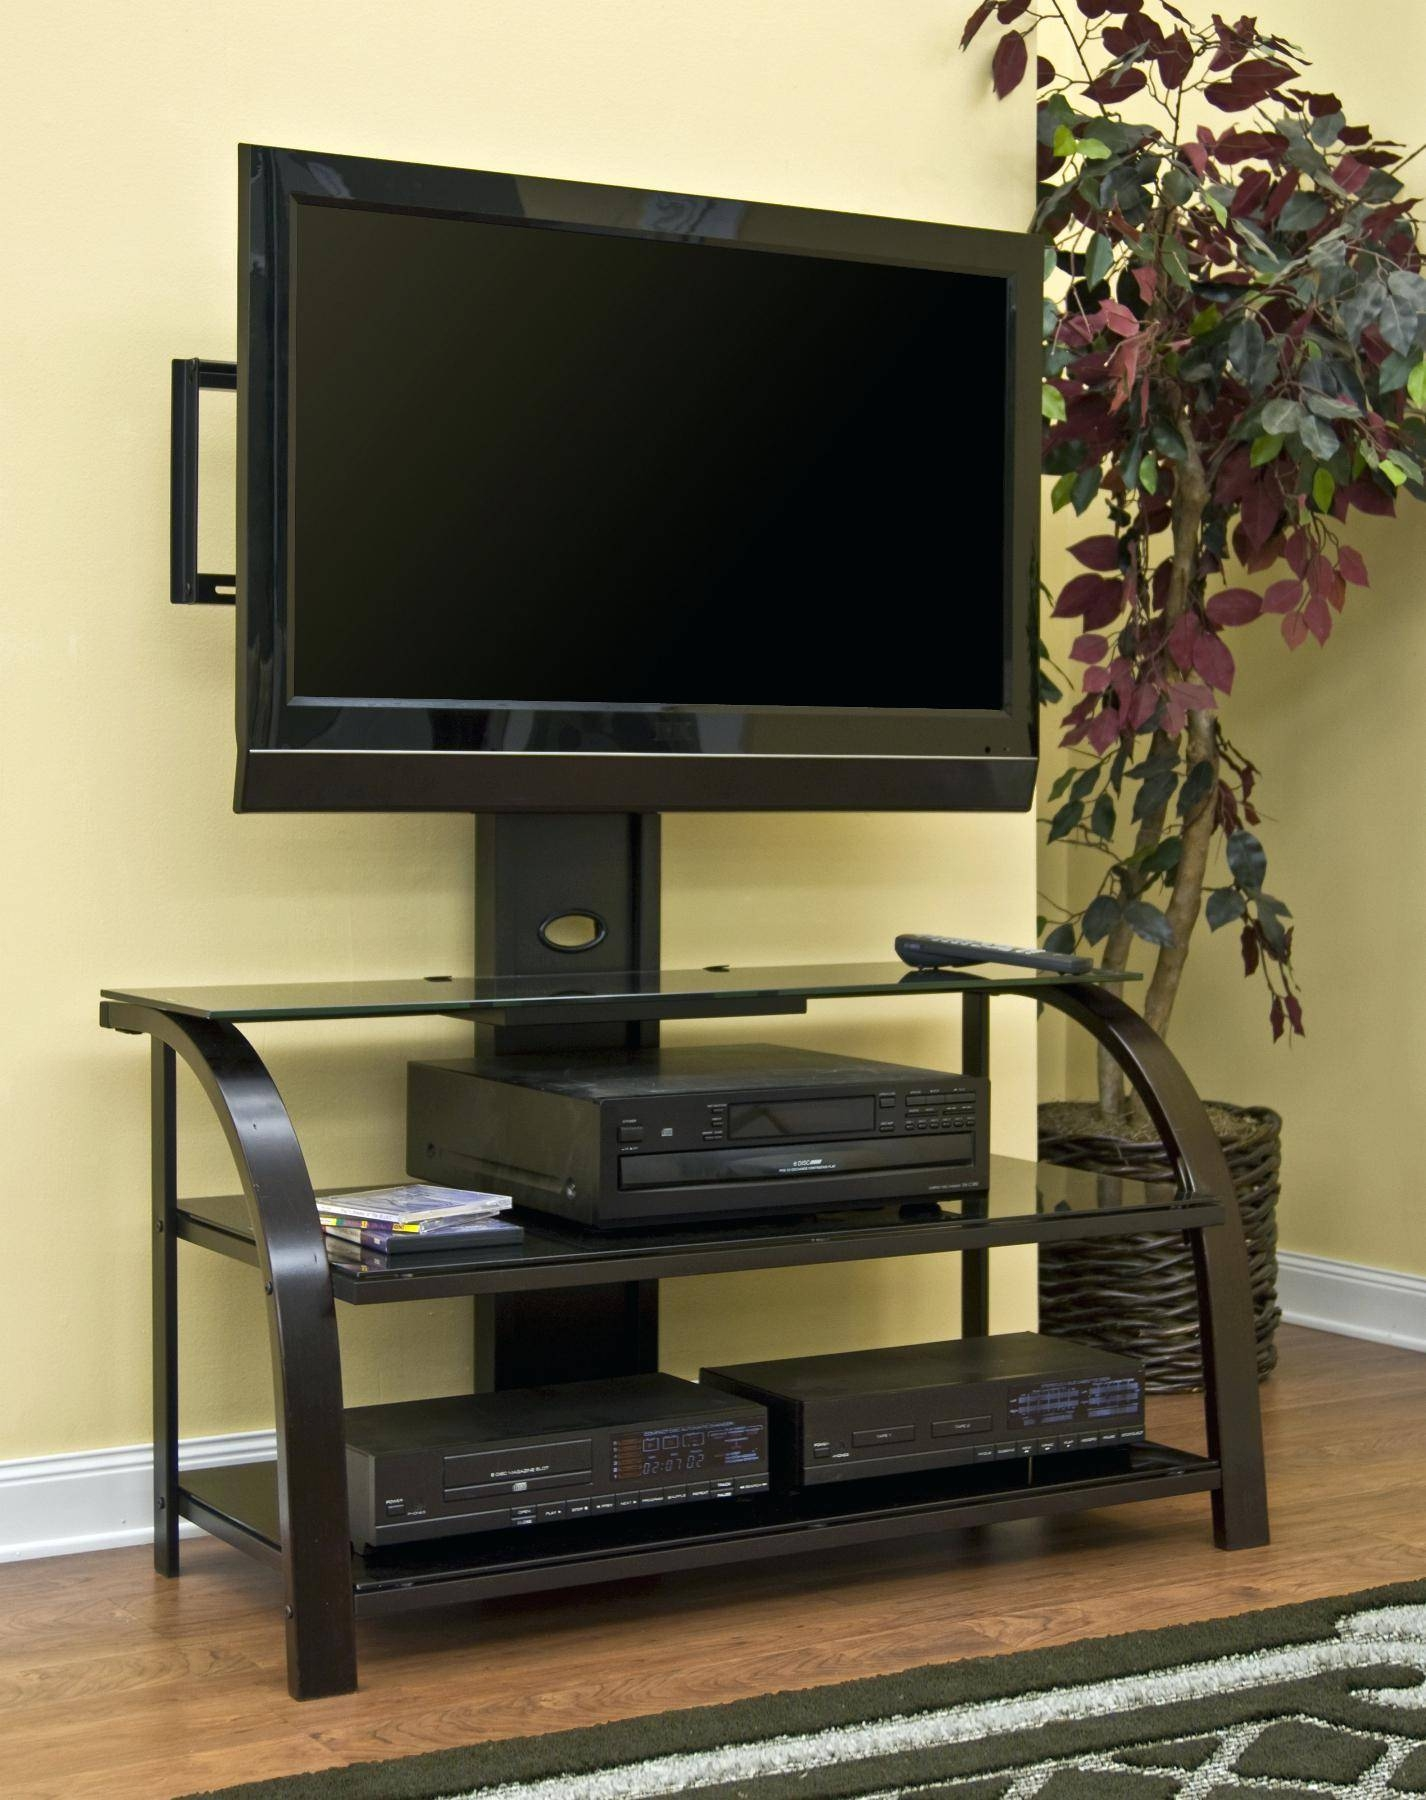 Tv Stand : 90 Country Wall Decor For Living Room White Gloss Wood In Tv Stands With Storage Baskets (View 11 of 15)